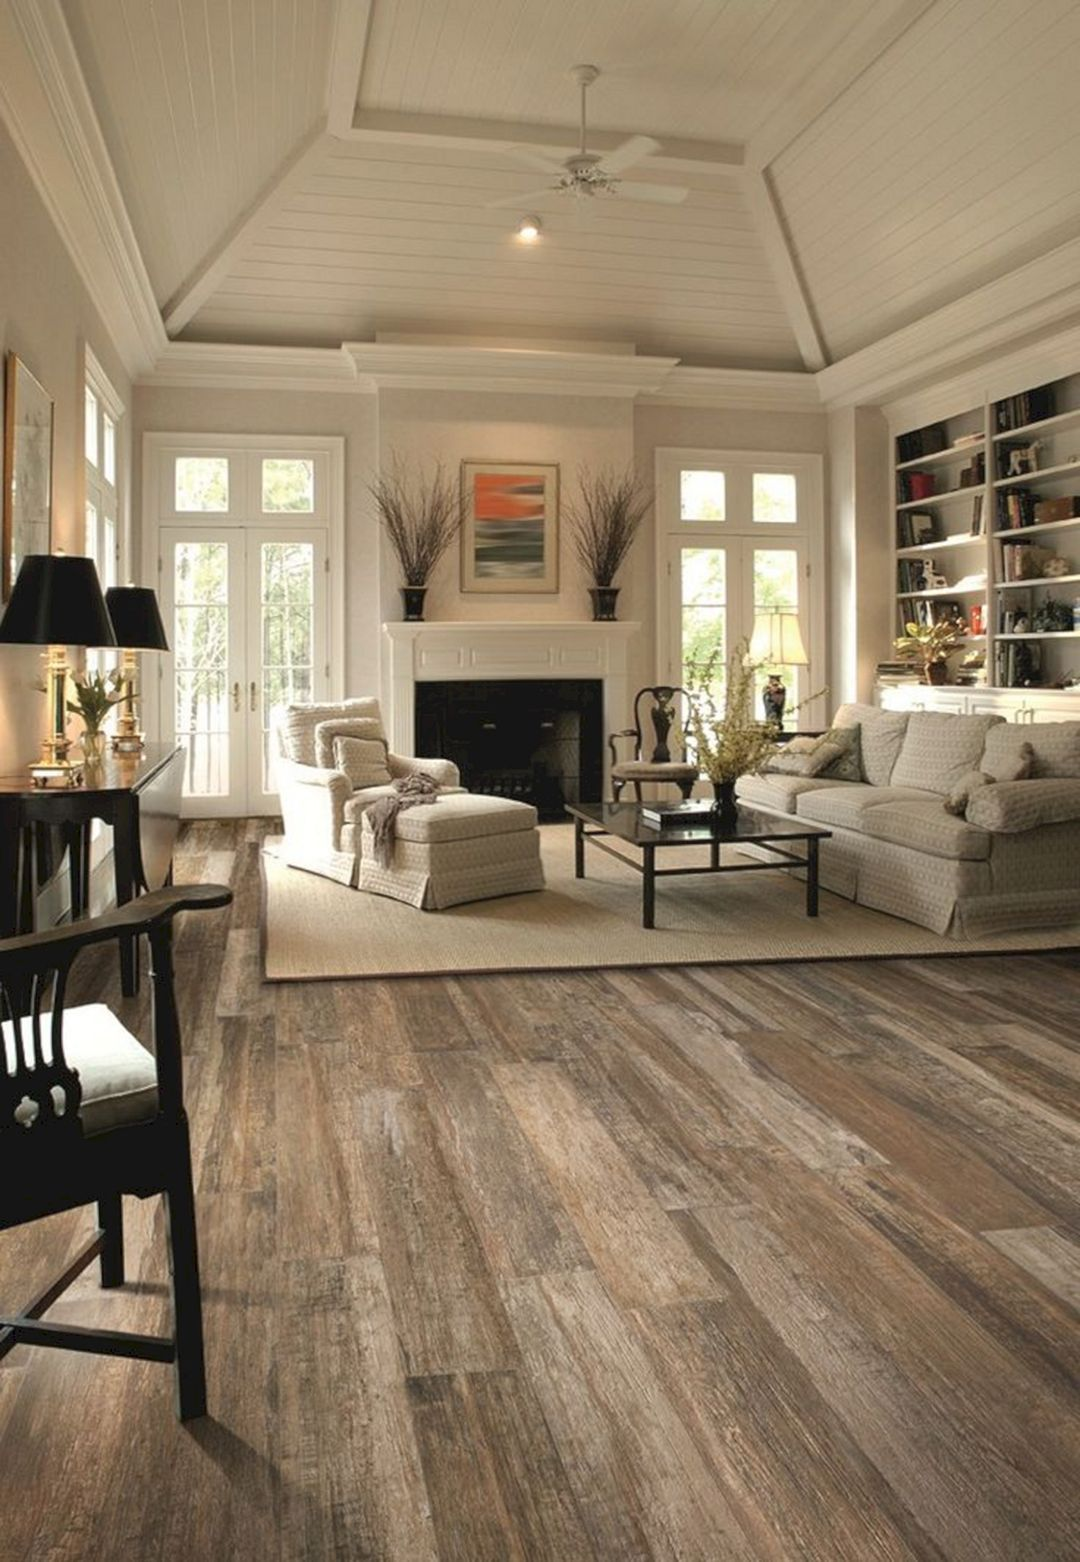 French Country Flooring : french, country, flooring, Elegant, French, Country, Architecture, Ideas, FresHOUZ.com, Home,, House, Styles,, Homes